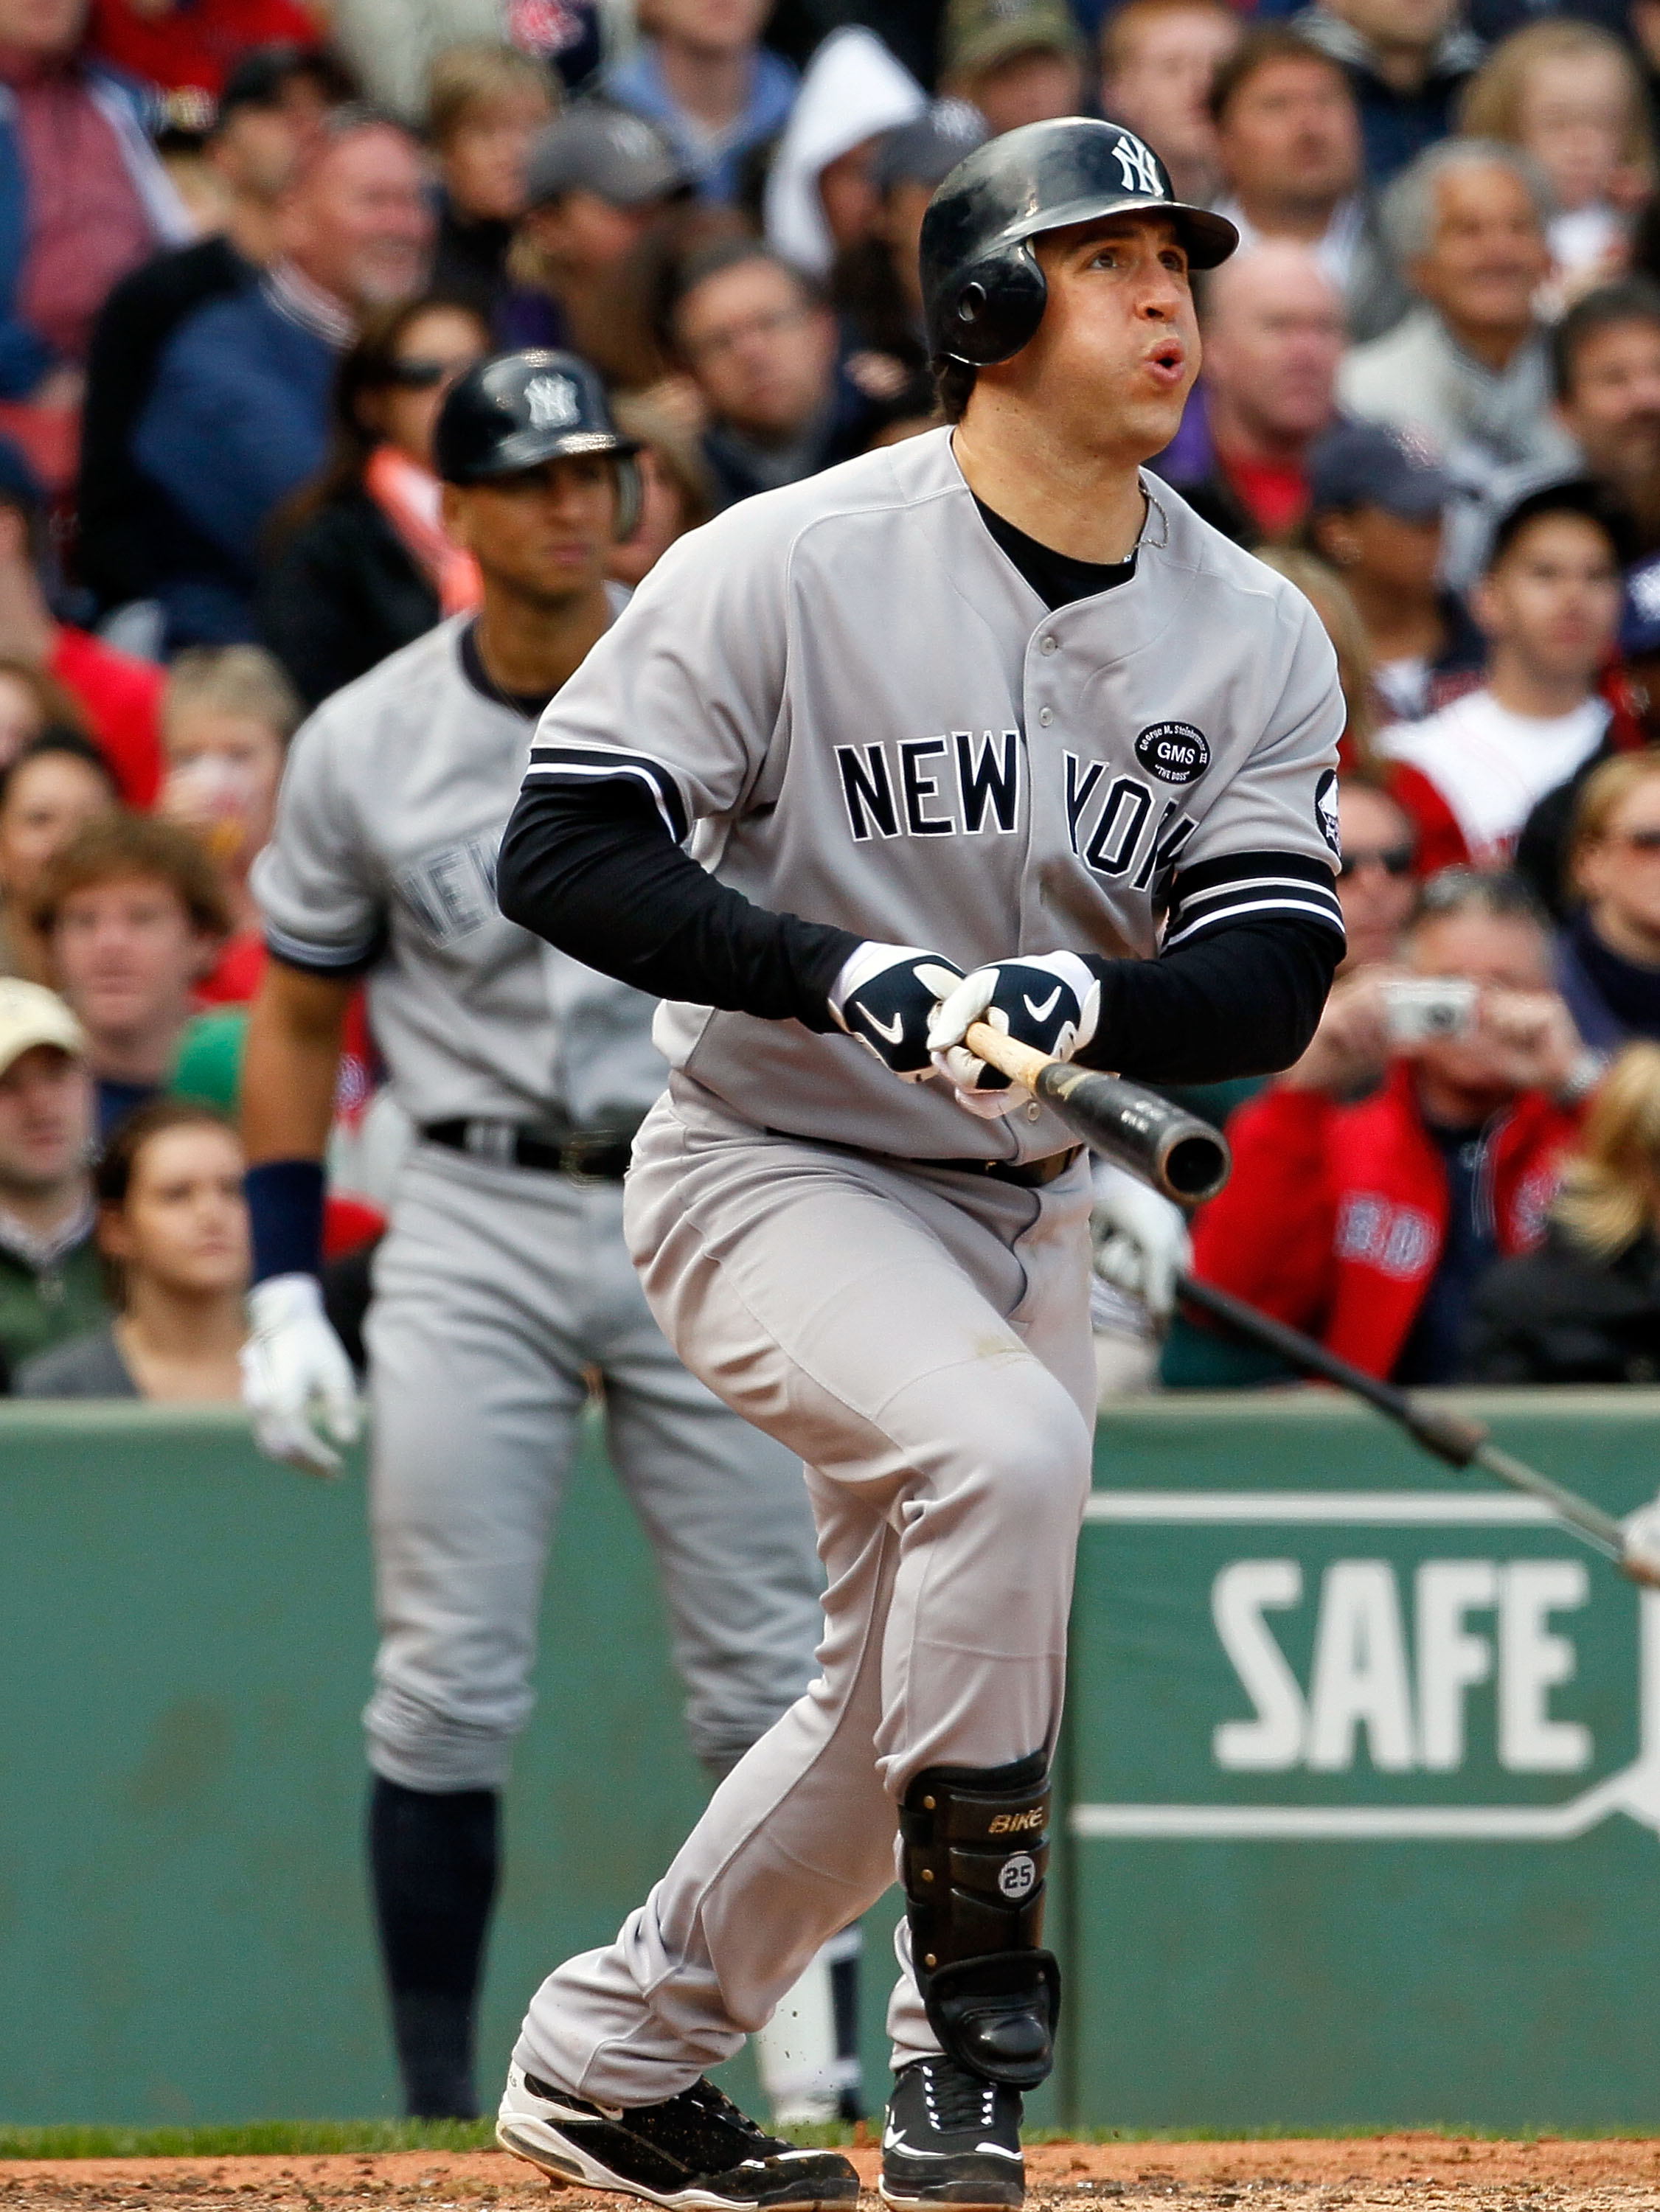 BOSTON - OCTOBER 3:  Mark Teixeira #25 of the New York Yankees watches the flight of a hit ball against the Boston Red Sox at Fenway Park October 3, 2010 in Boston, Massachusetts. (Photo by Jim Rogash/Getty Images)